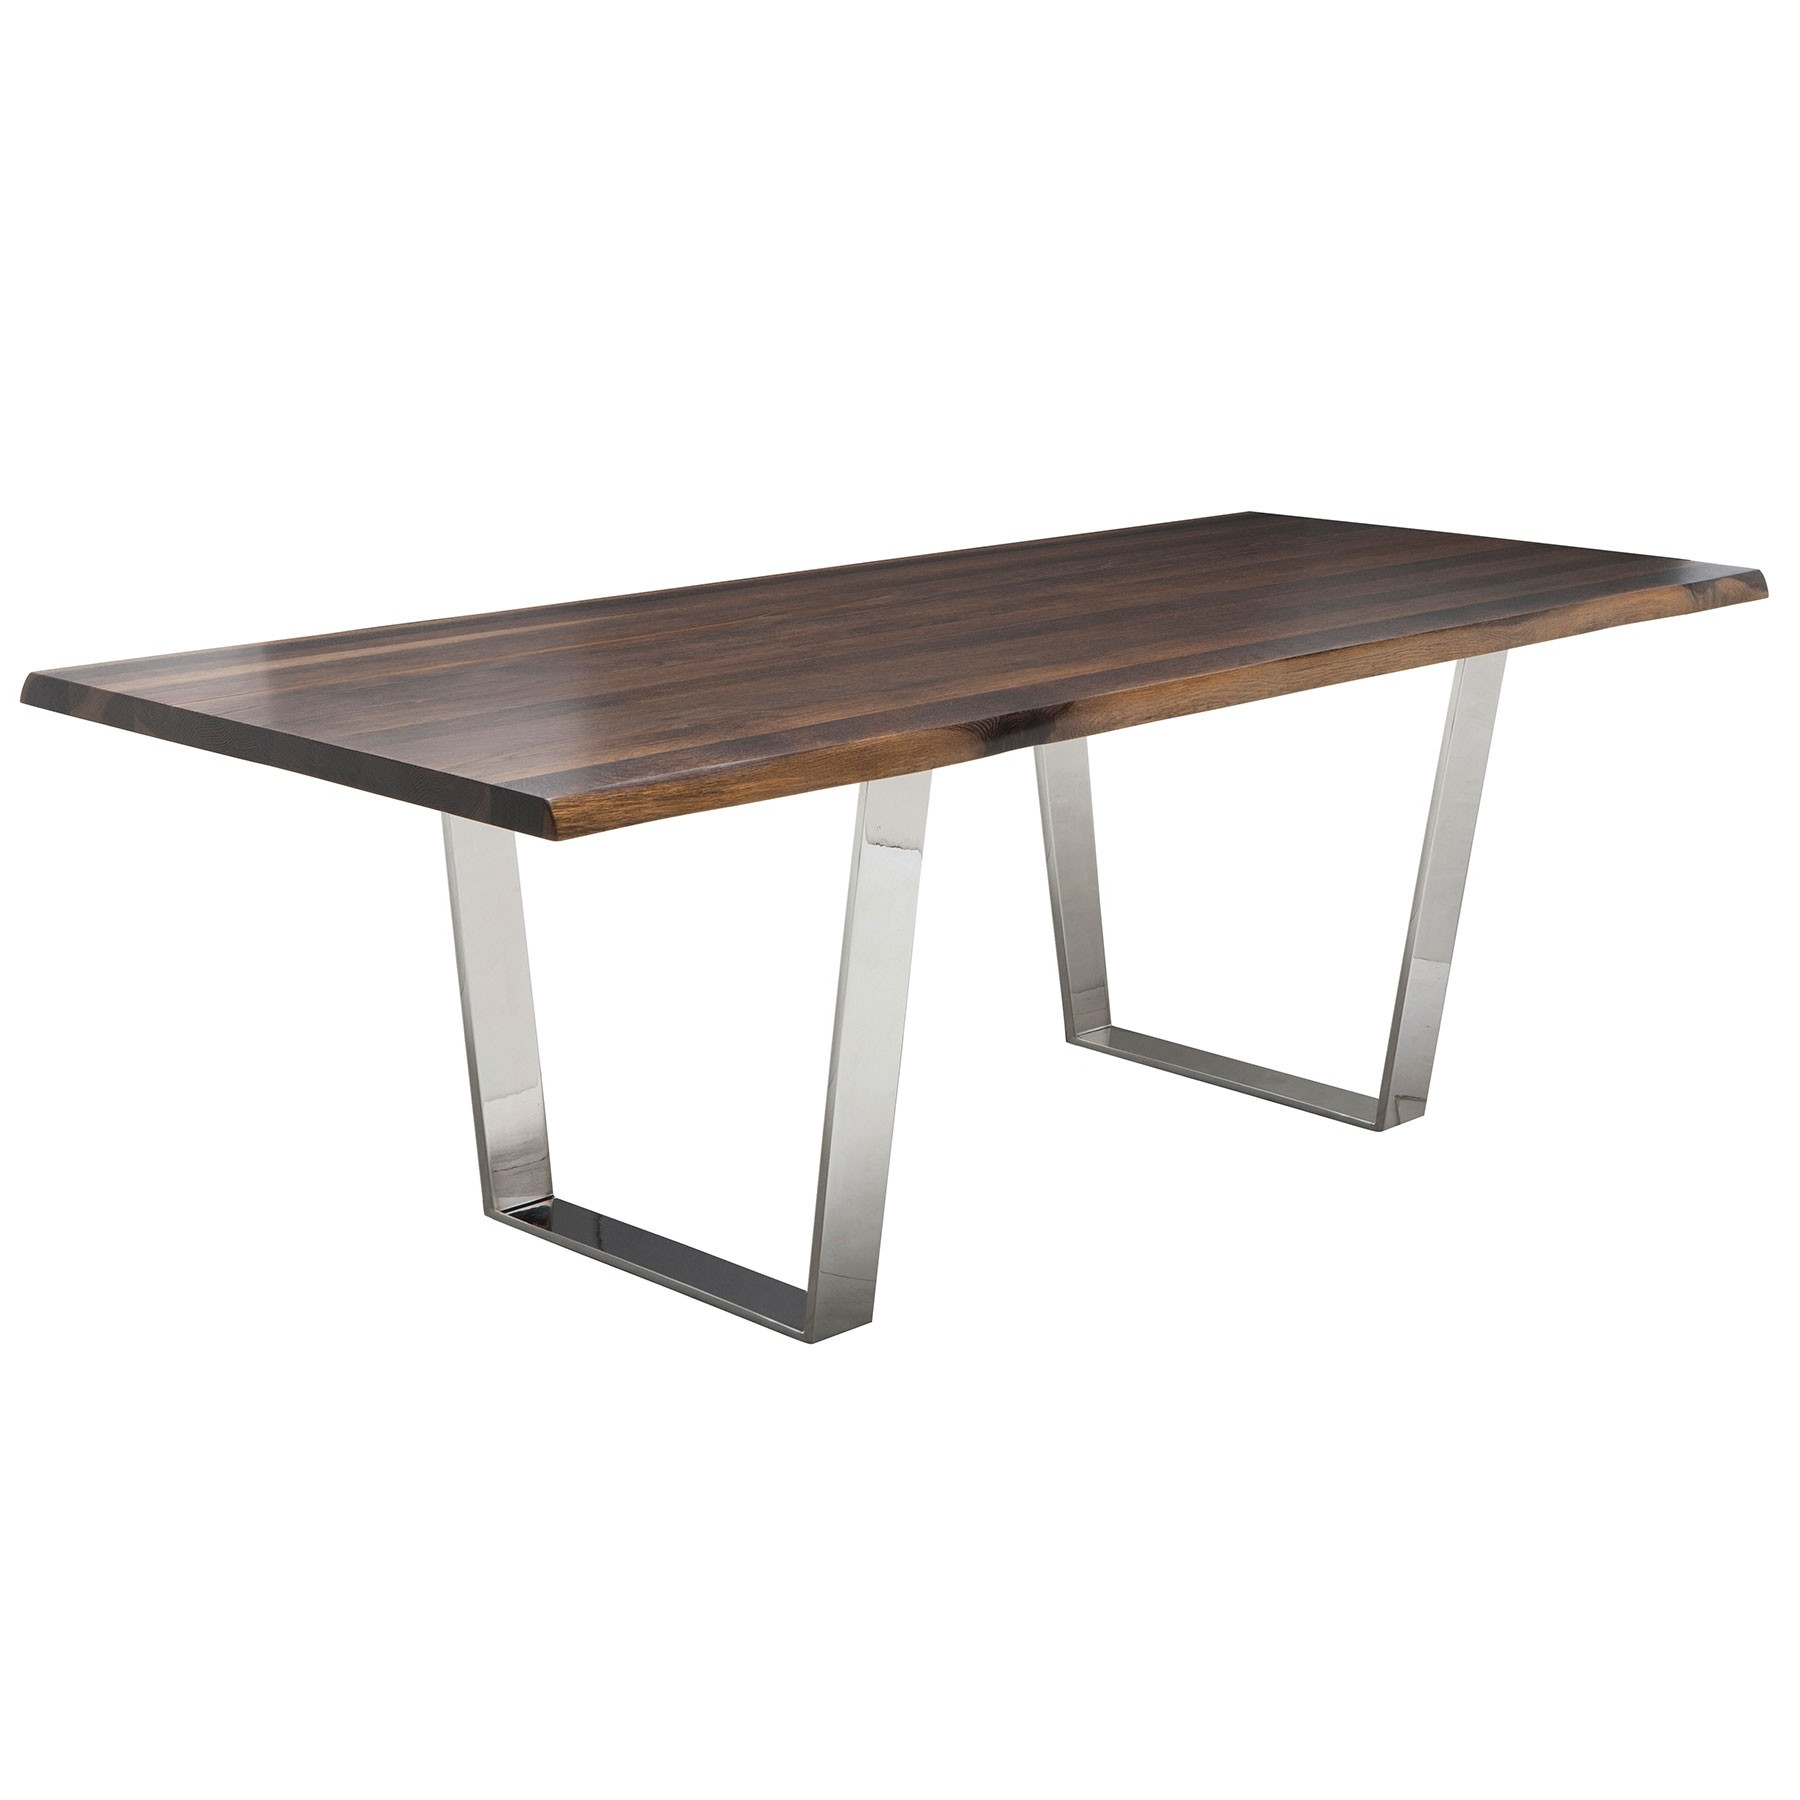 Well Known Dining Tables In Seared Oak With Regard To Versailles Dining Table – Seared Oak / Steel (View 23 of 25)